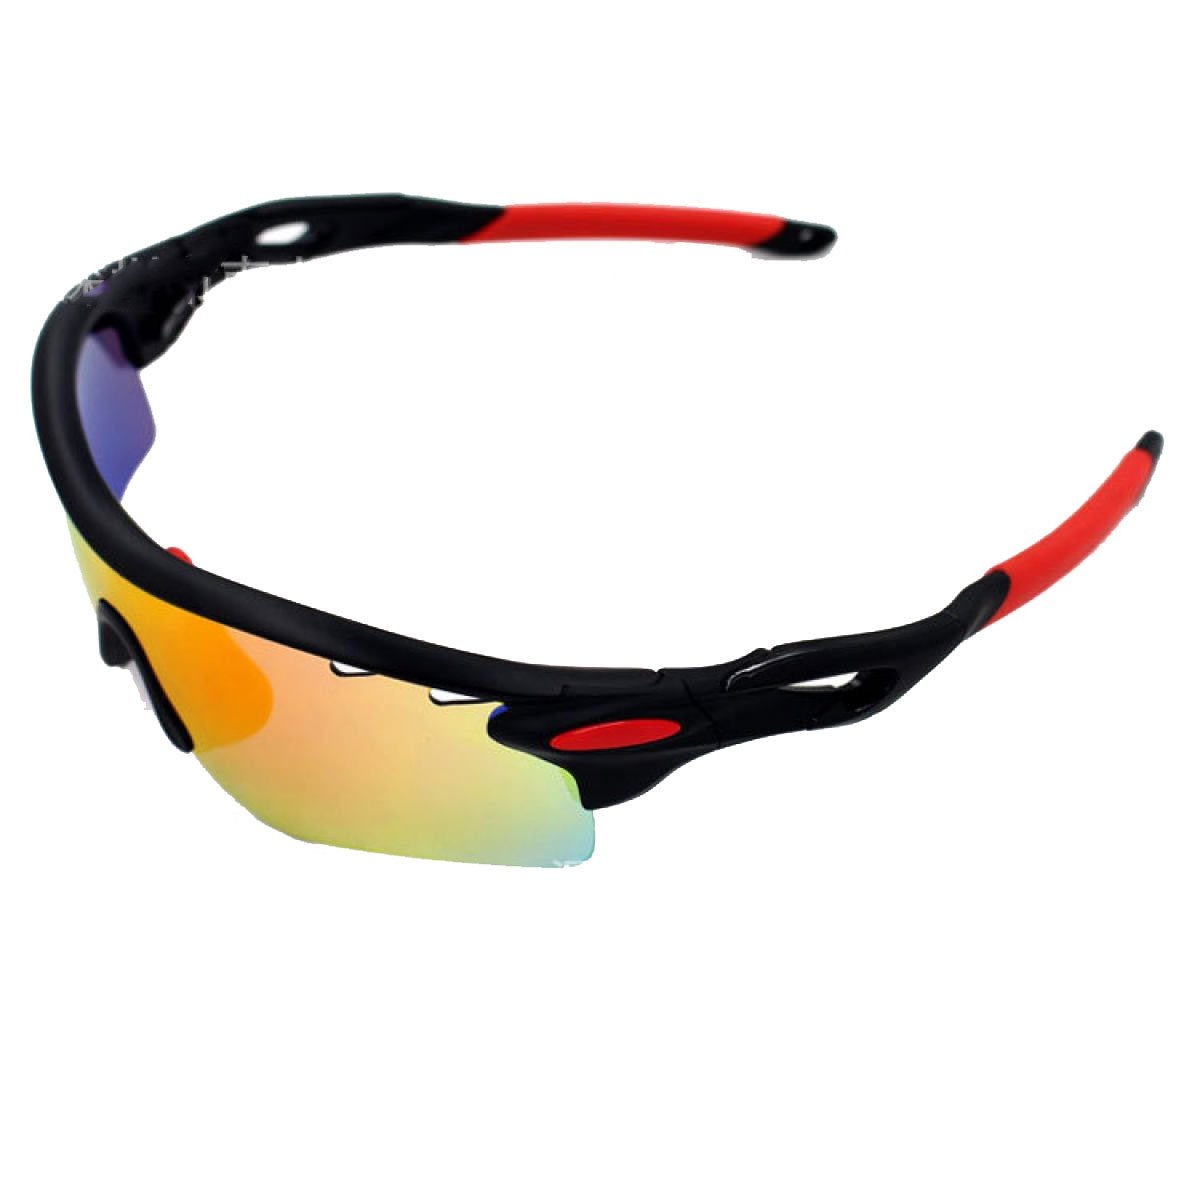 TZQ Riding Glasses Wind Mirrors Sports De Plein Air Lunettes De Soleil Polarisantes Lunettes De Ski Anti-buée,E